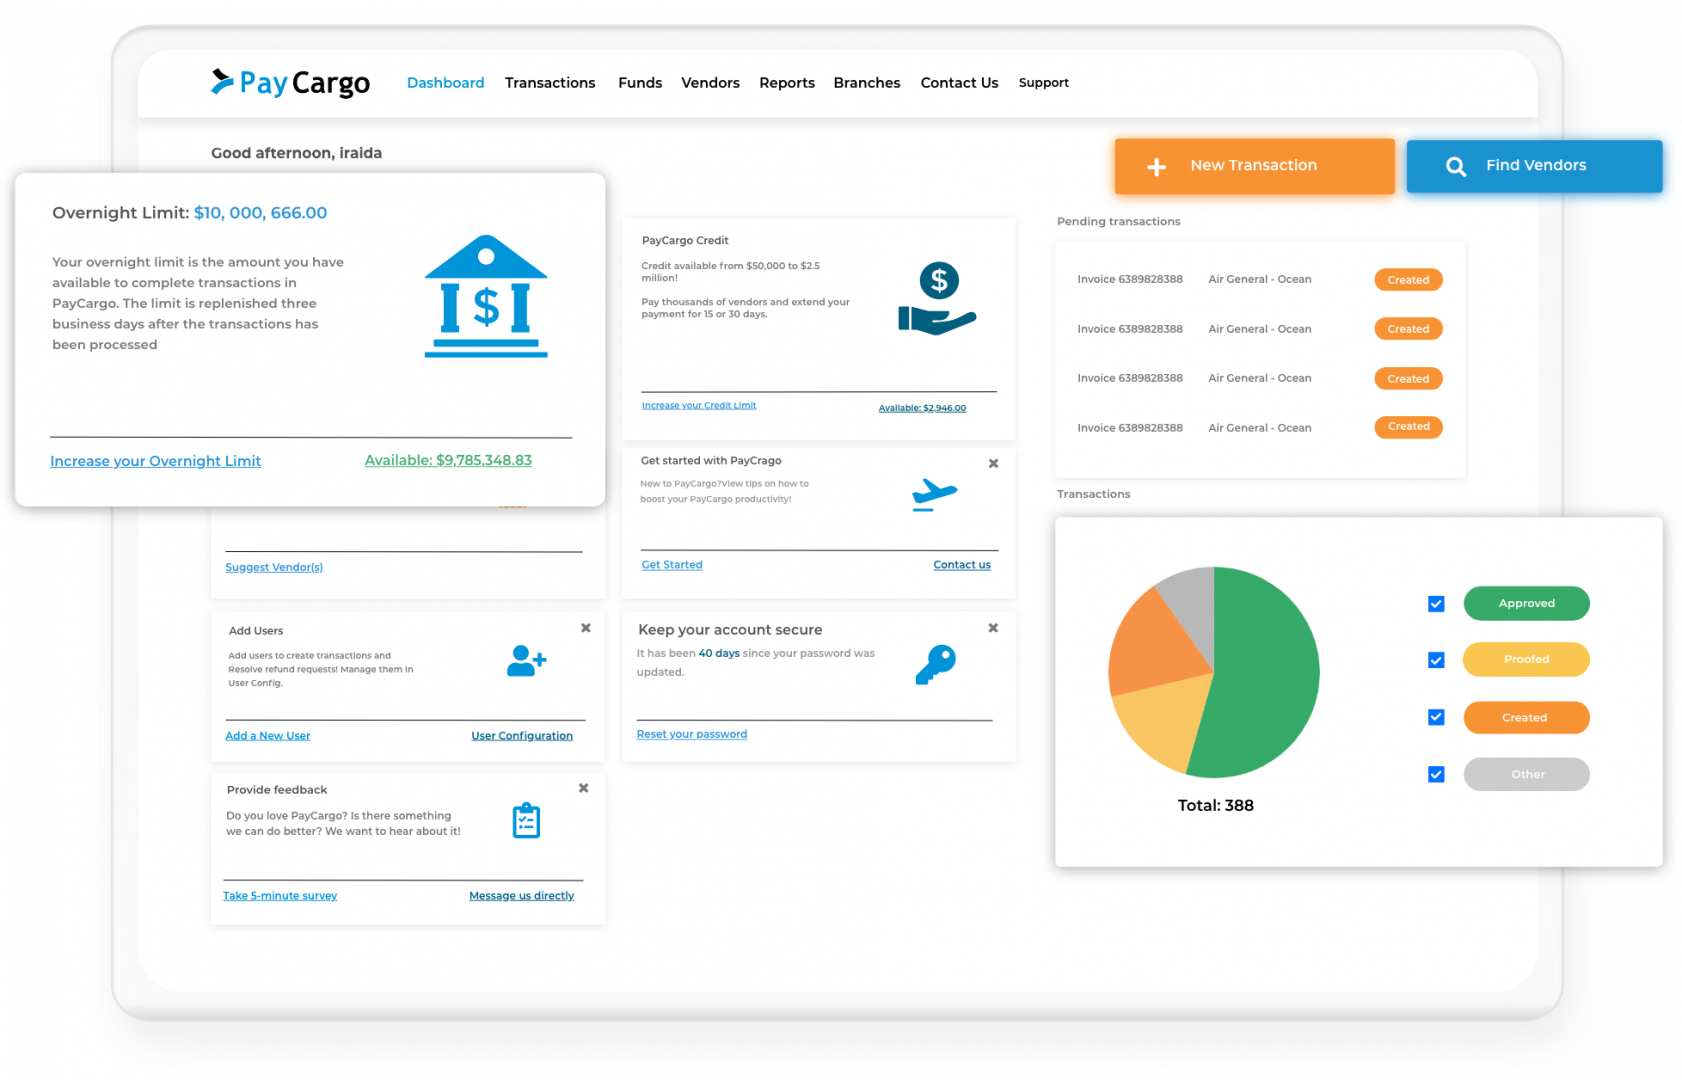 payer interface